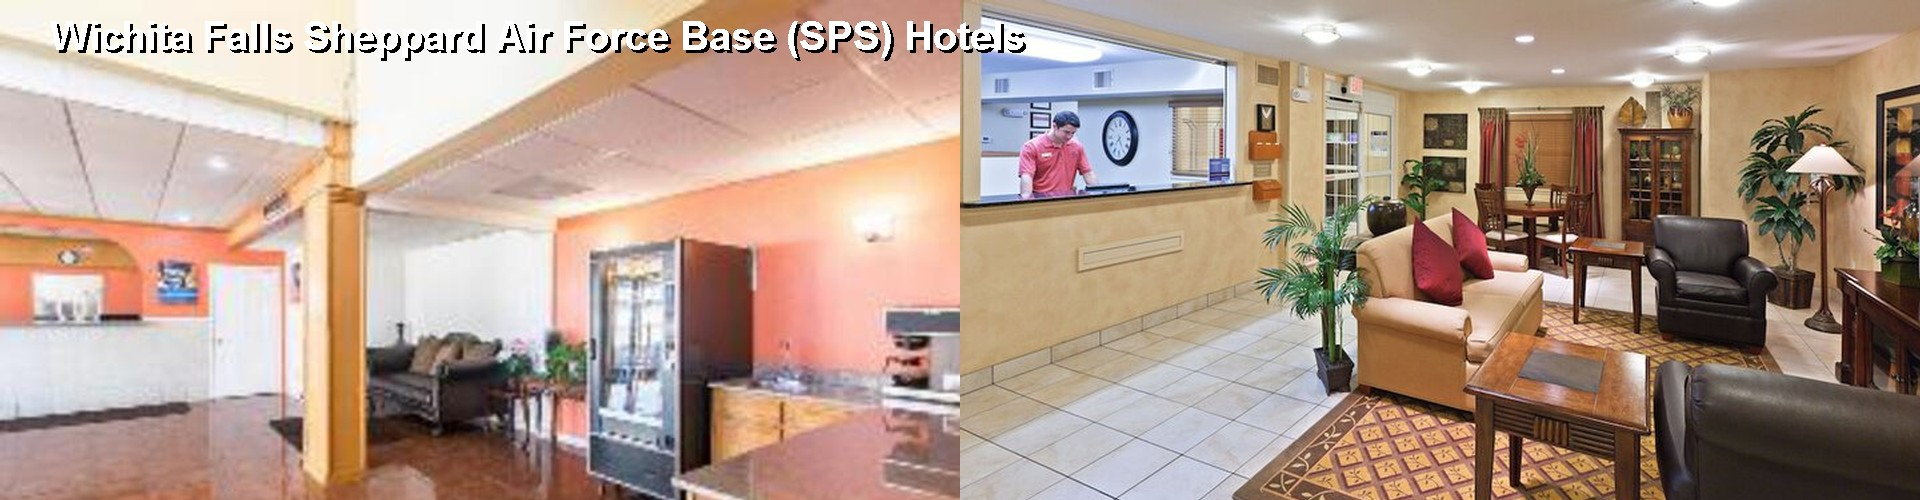 $37+ Hotels Near Wichita Falls Sheppard Air Force Base (SPS) TX